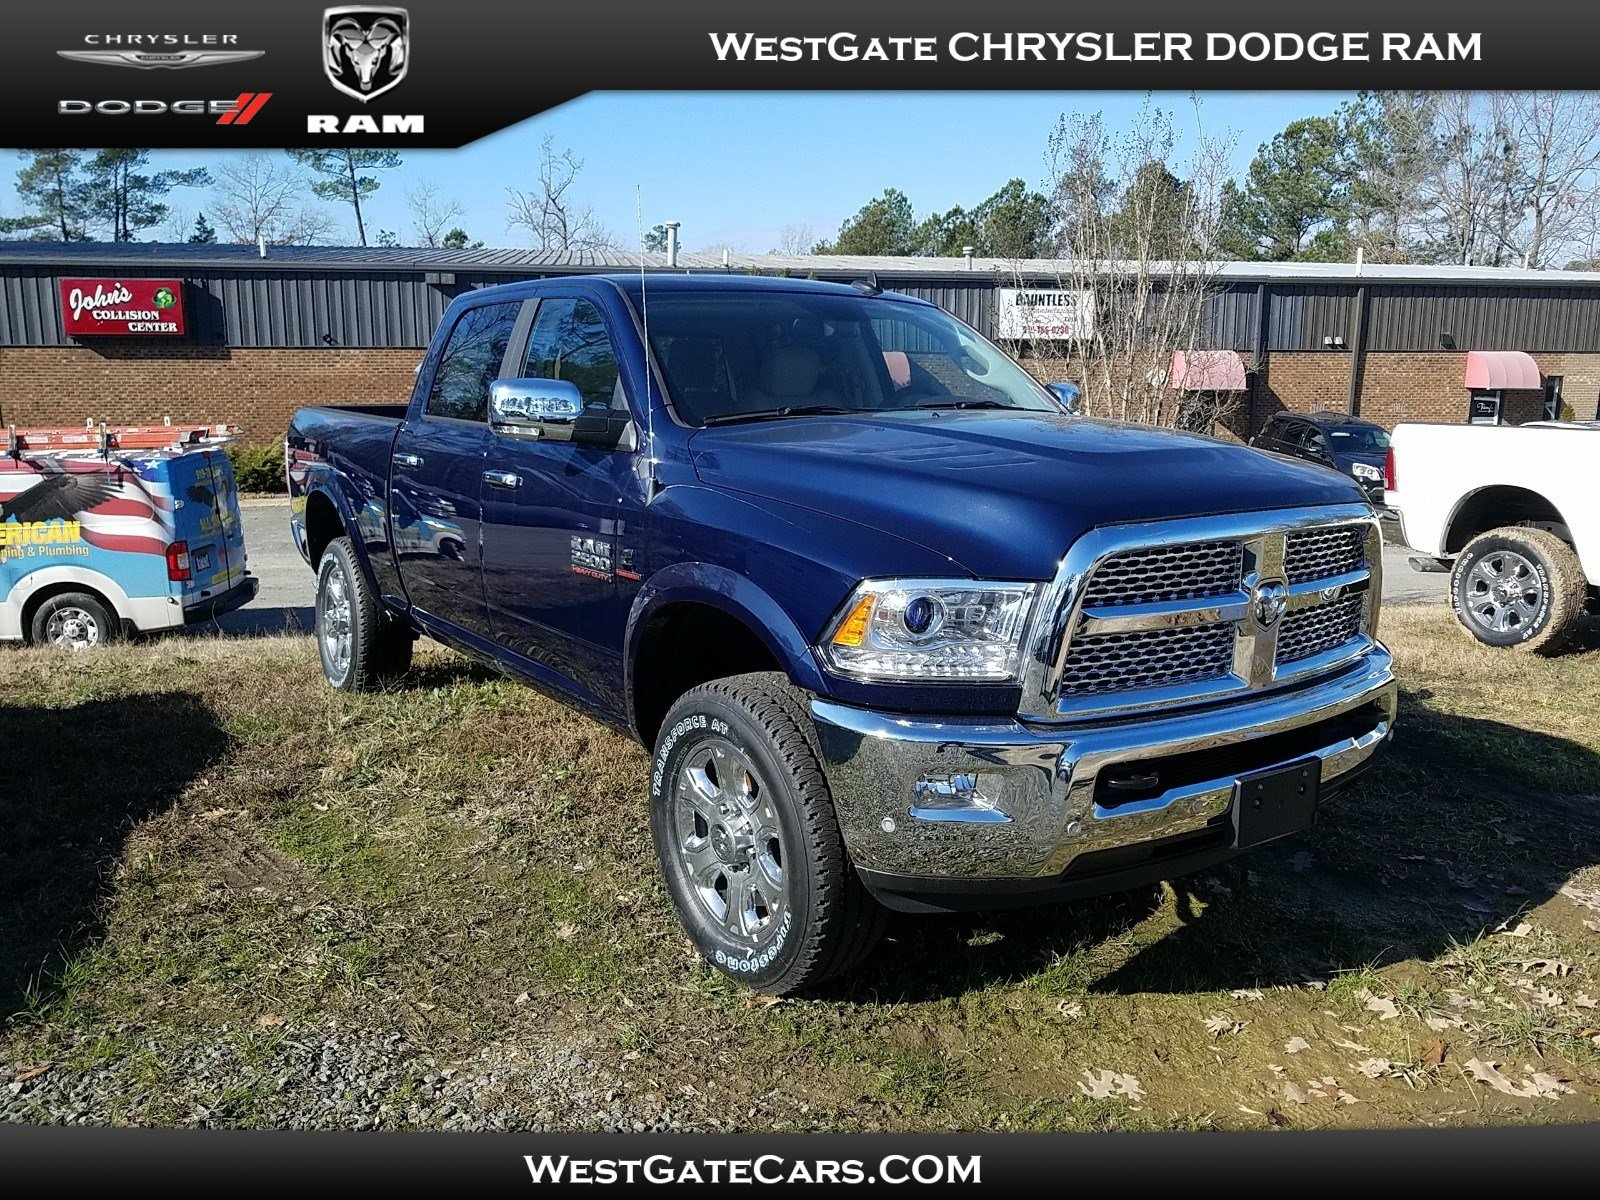 Ram Model Research In Raleigh Nc Westgate Chrysler Jeep Dodge 2500 4x4 2018 Laramie Crew Cab 64 Box